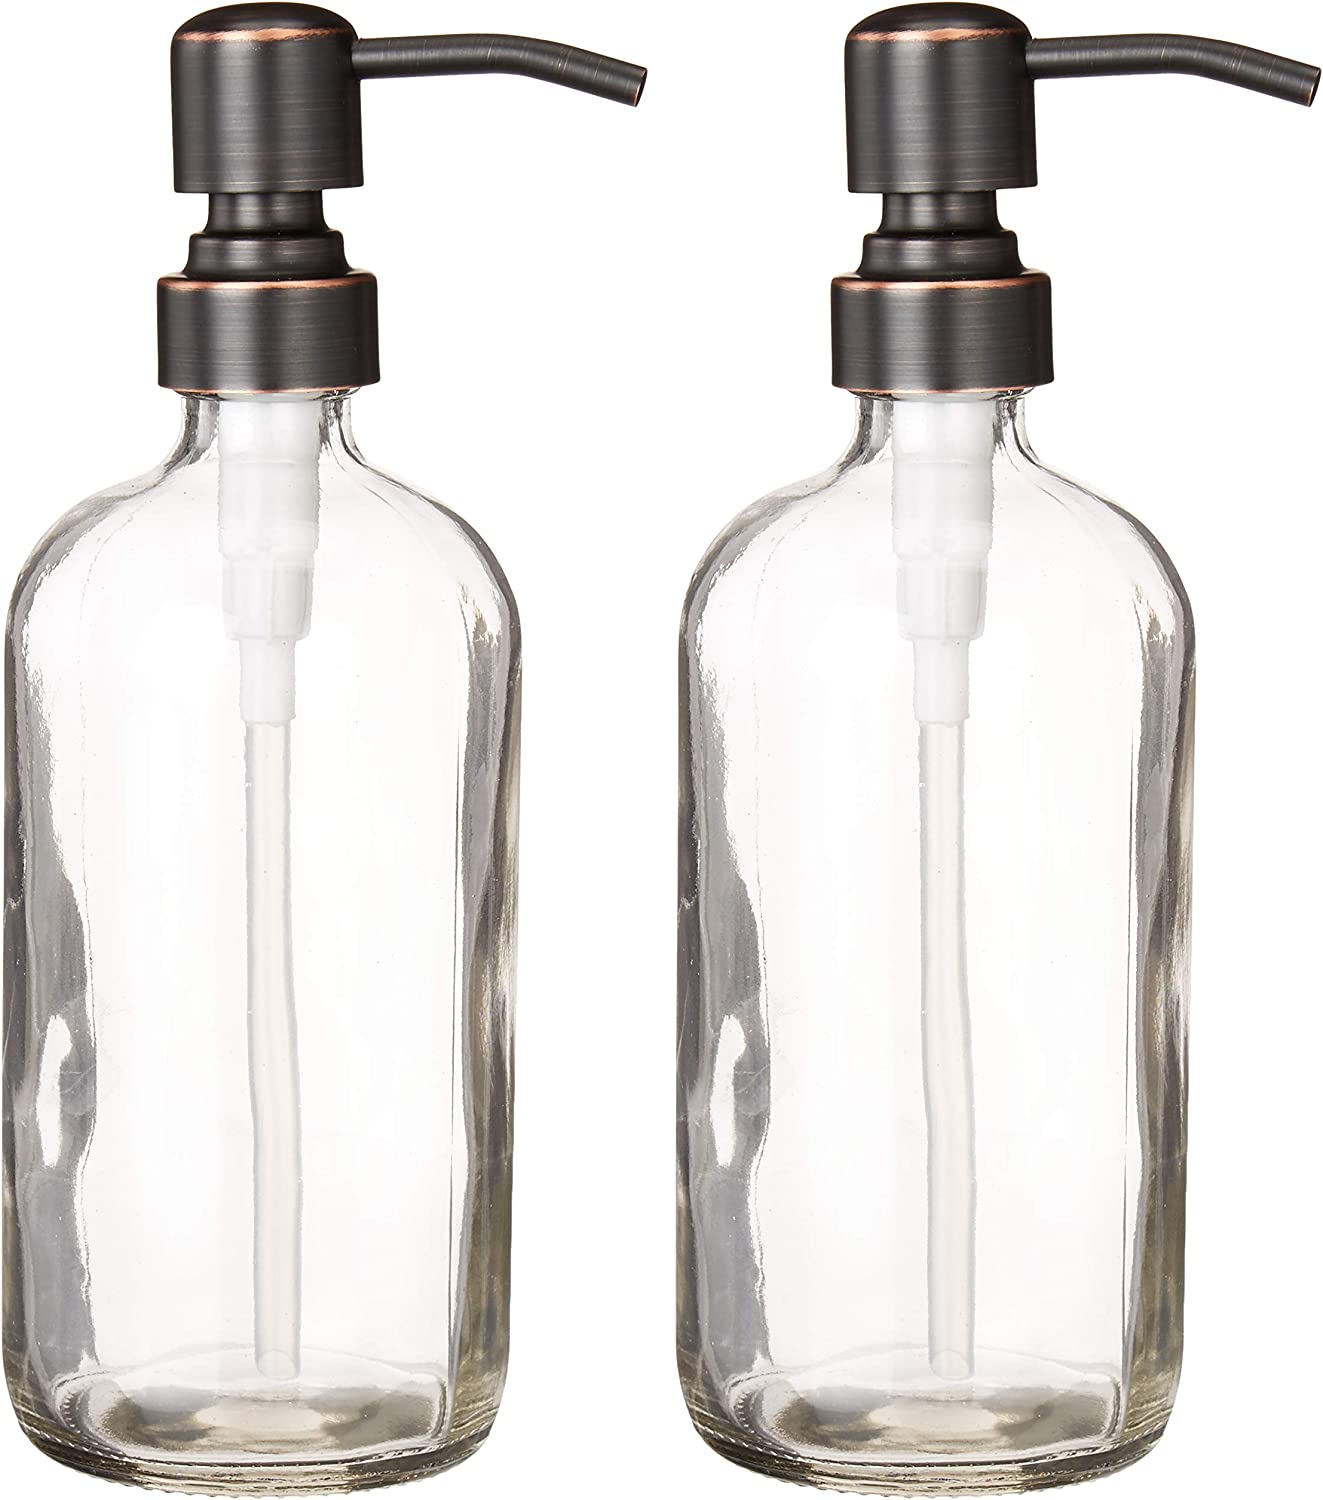 2-Pack Dispenser Pump Bottles for Kitchen and Bathroom - Dish Soap, Hand Soap, Shampoo, Lotion, Mouthwash, and More - Rust Resistant Oil-Rubbed Bronze Pump - Heavy 17.5 Ounce Glass Bottle